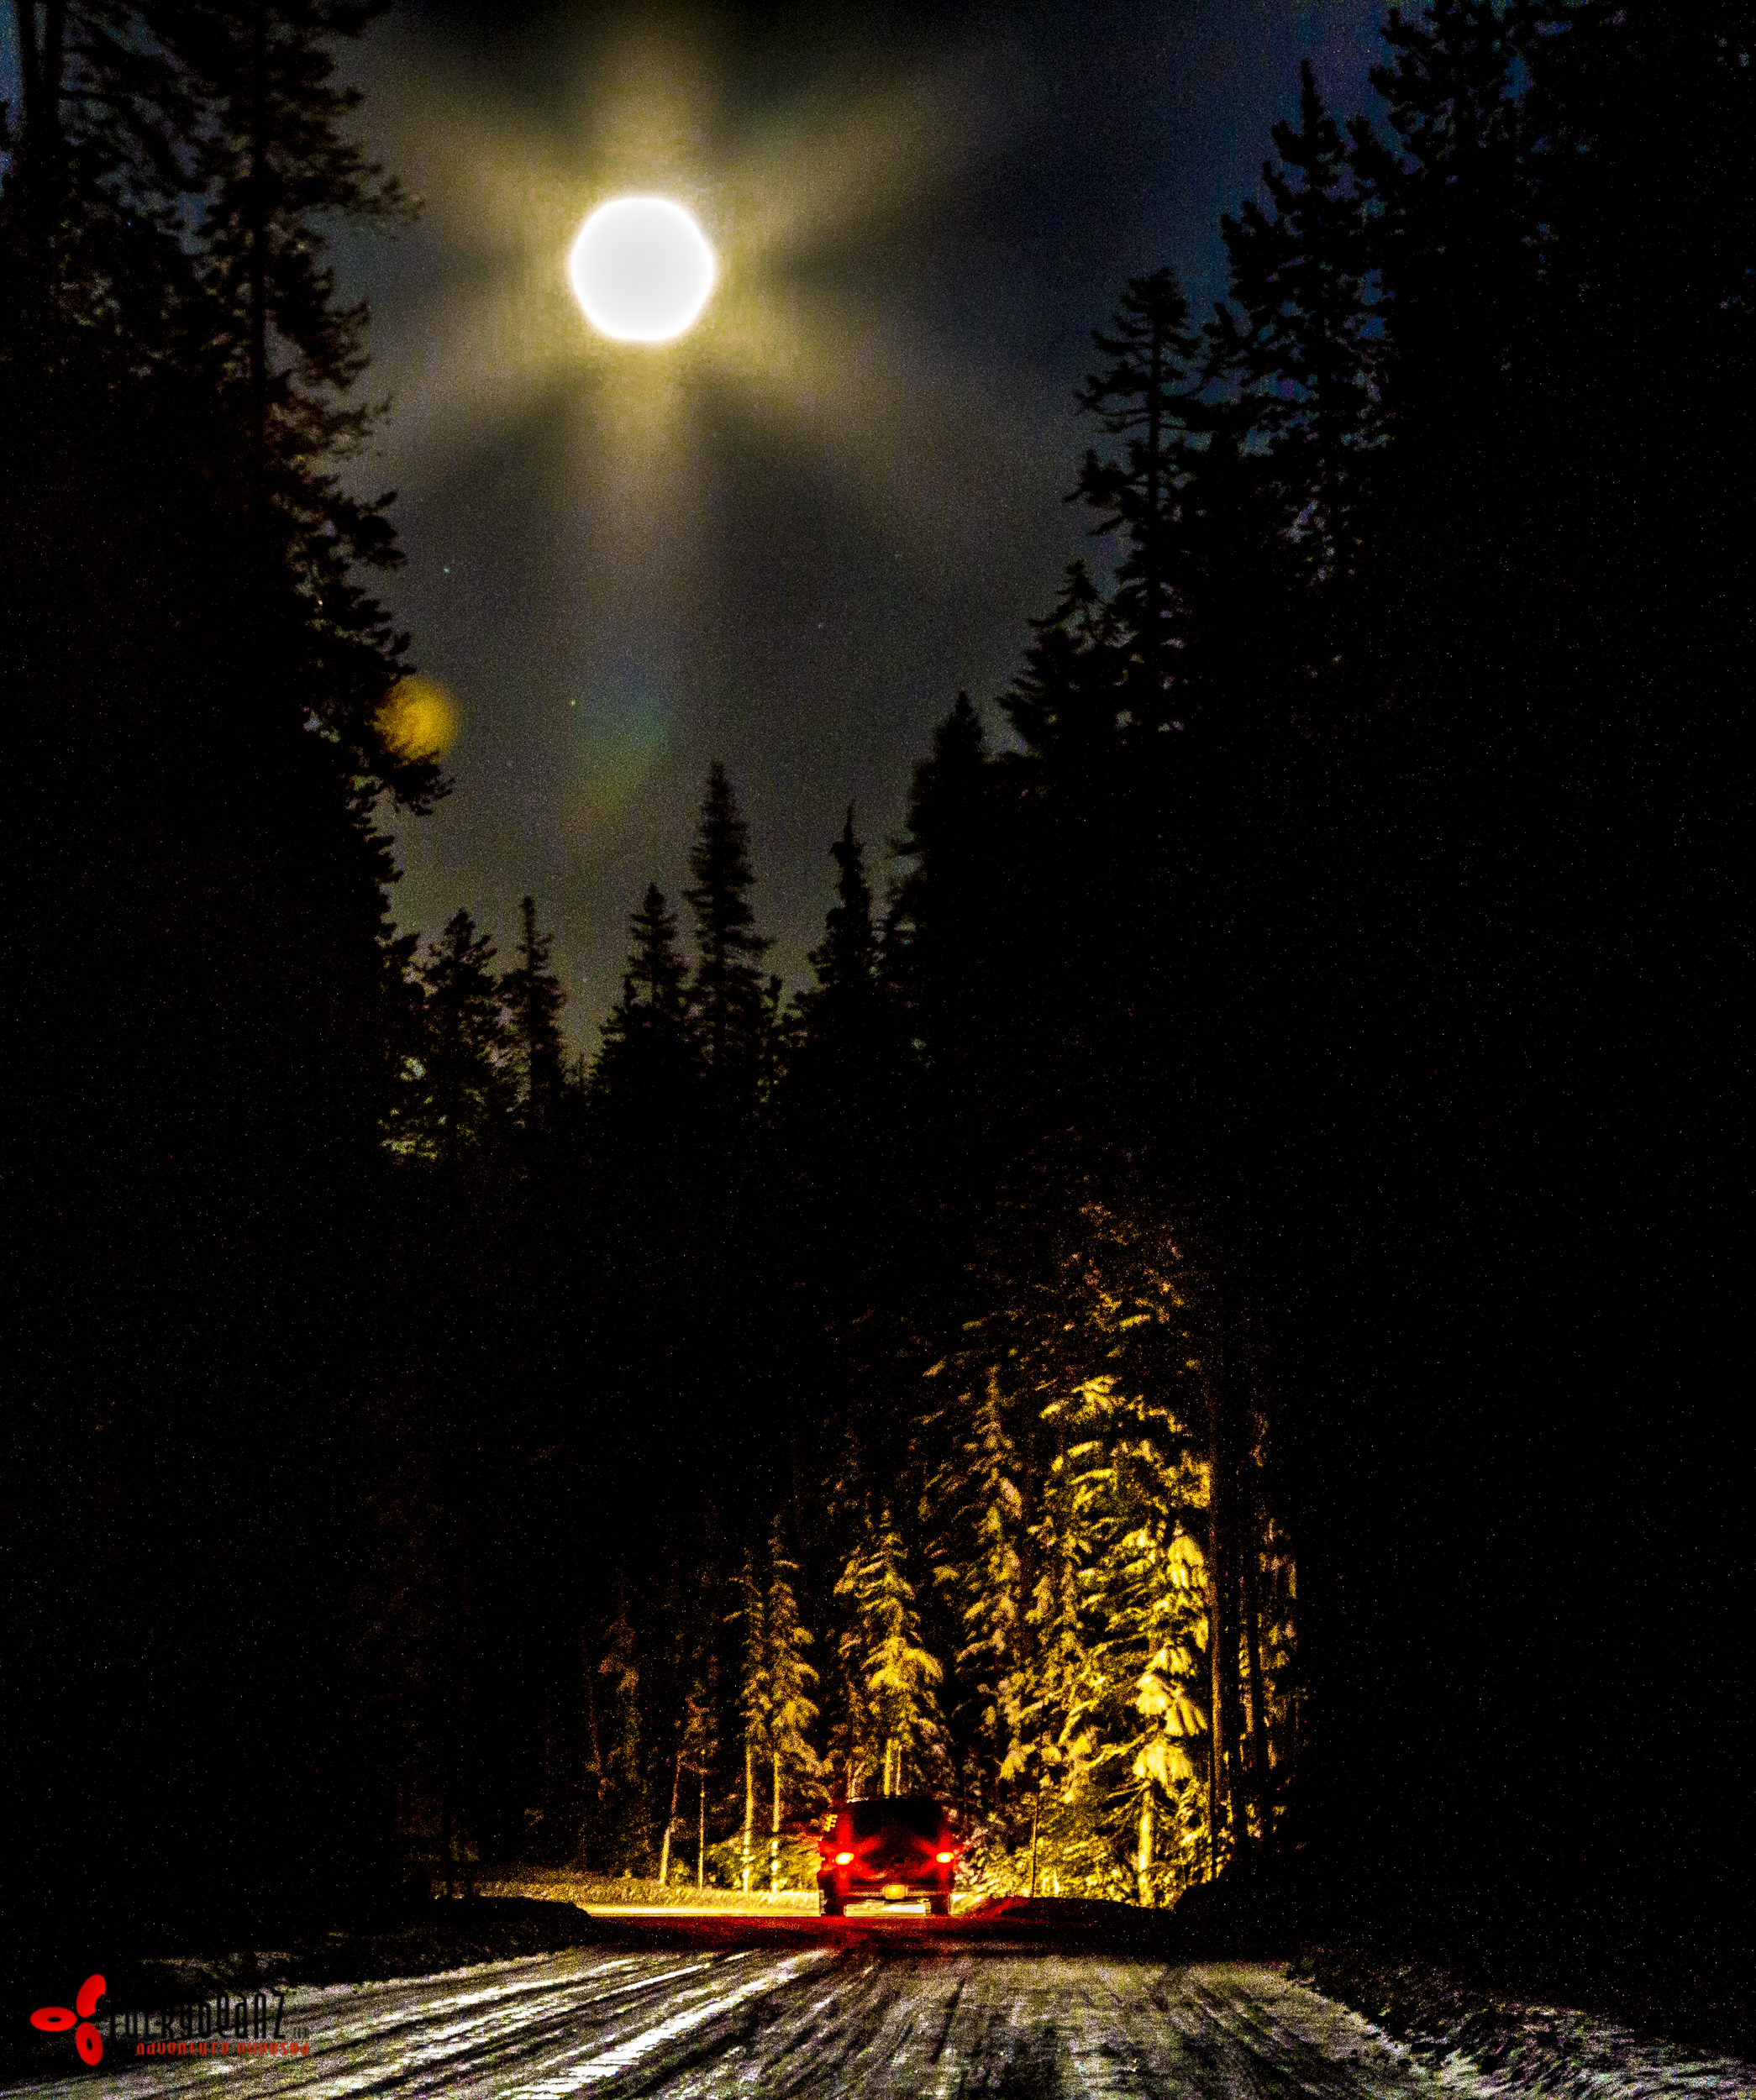 Driving up to Crater lake under a full moon.